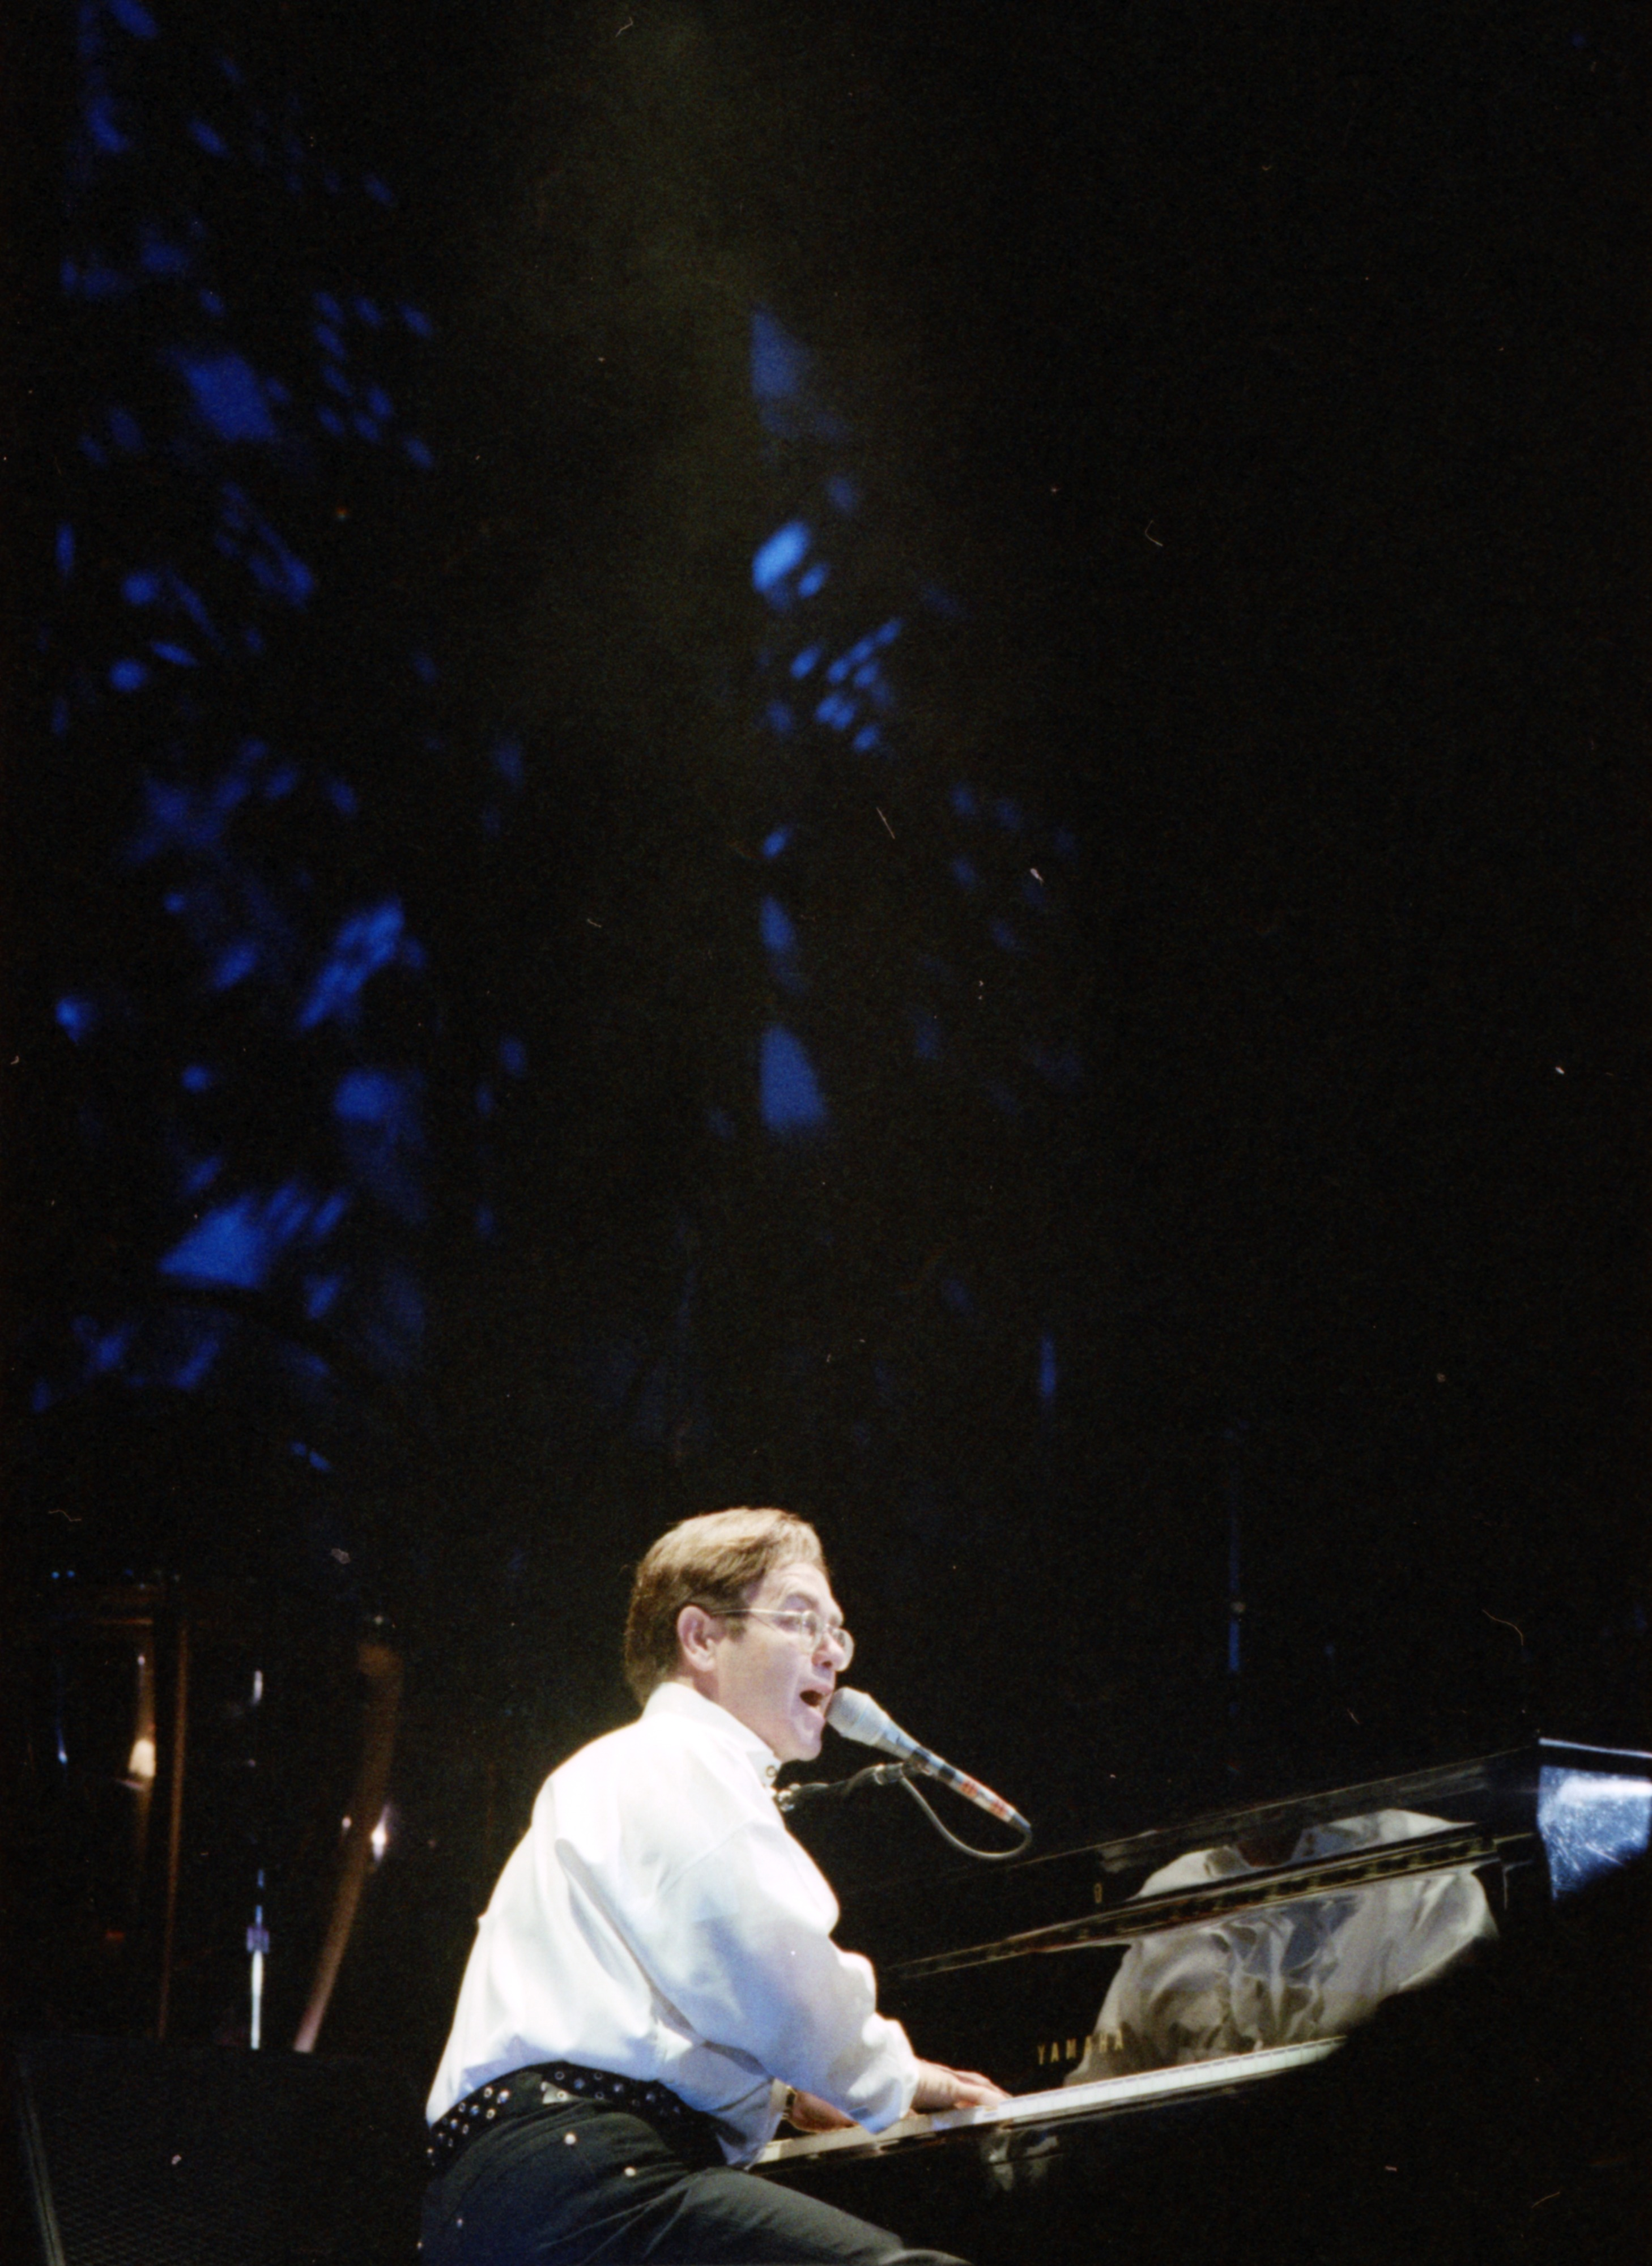 Elton John at Crisler Arena, October 15, 1993 image